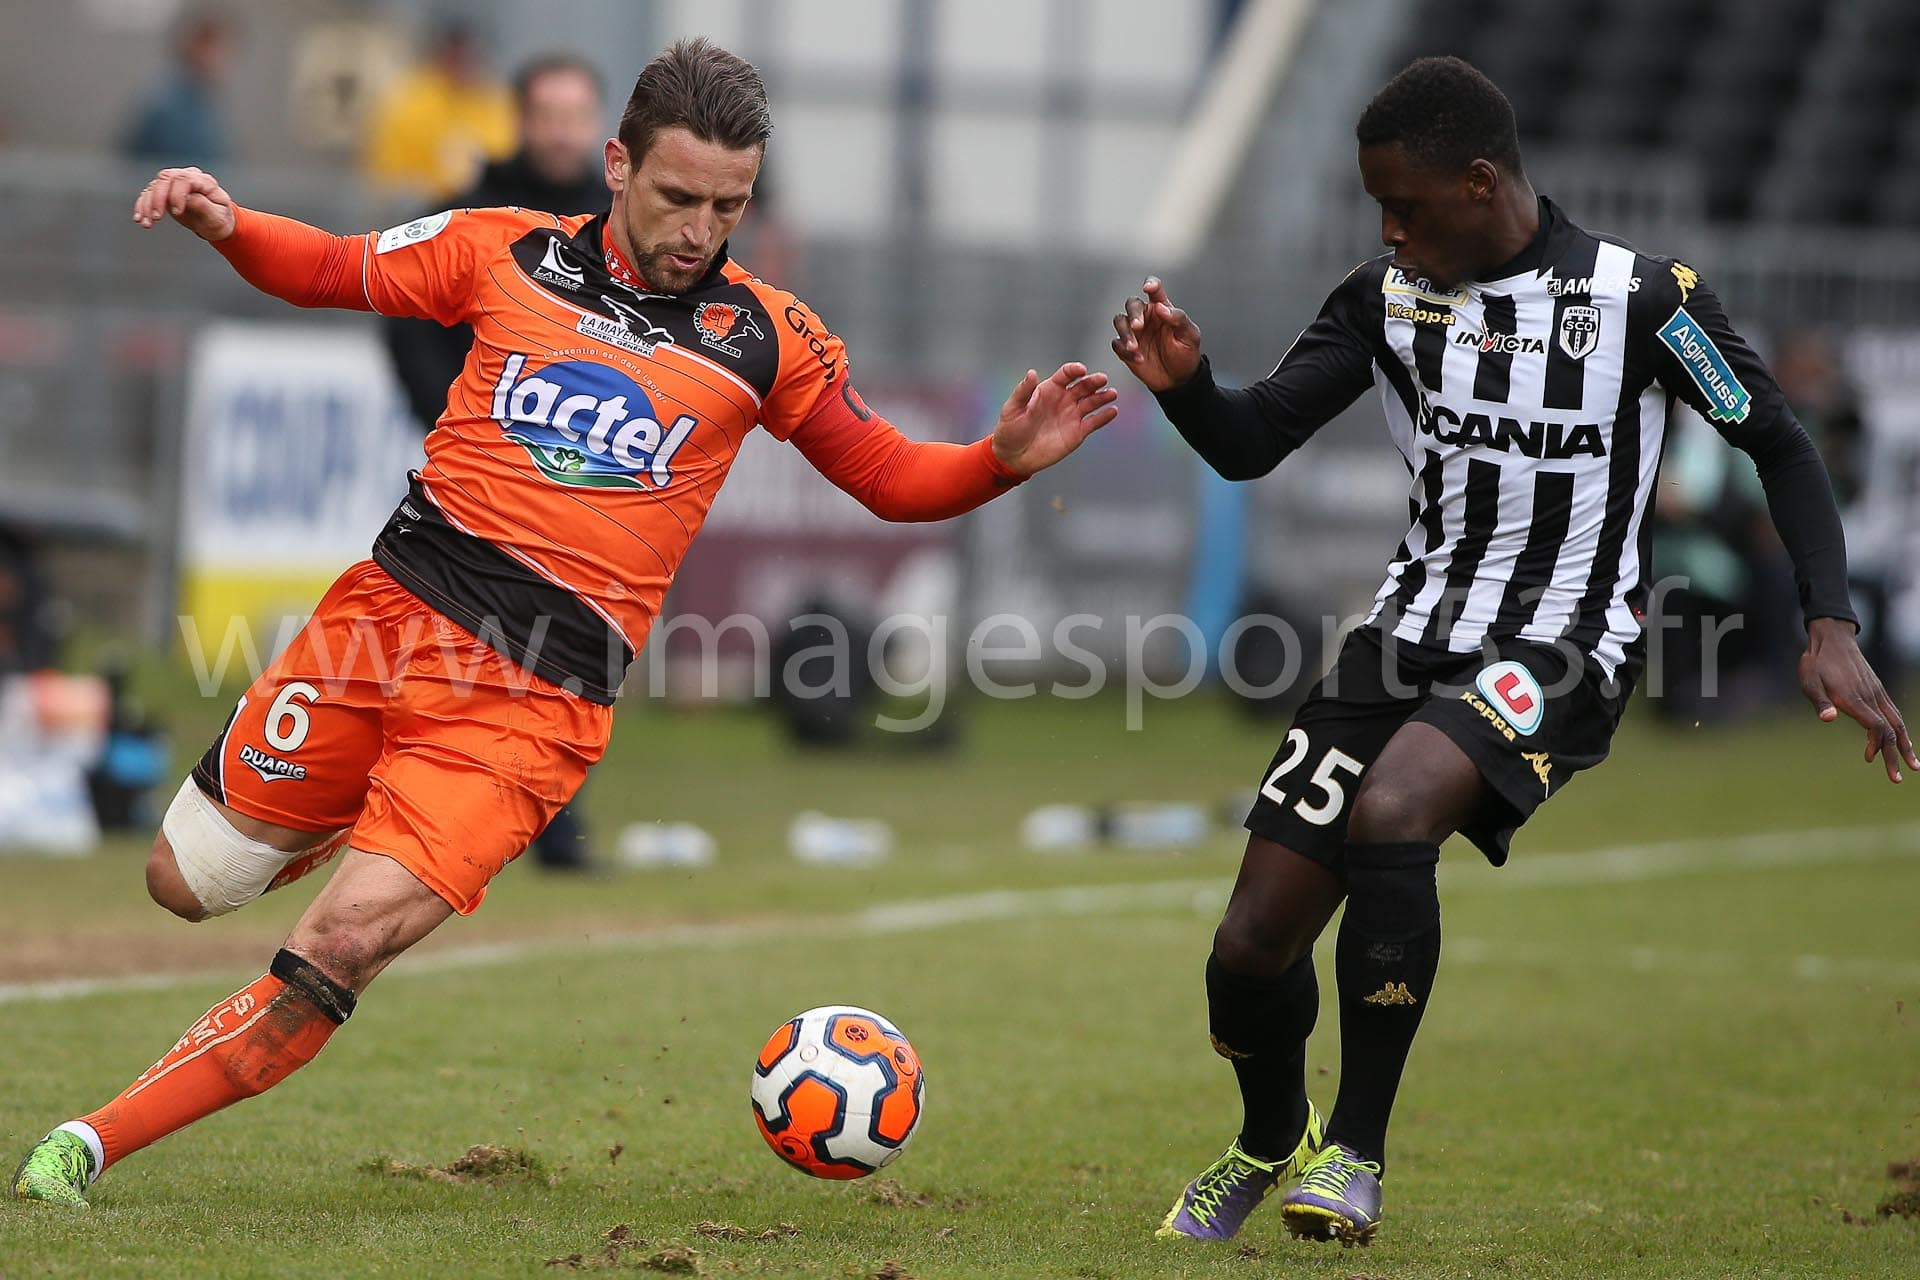 Anthony GONCALVES (Stade Lavallois), Arnlod BOUKA MOUTOU (Angers